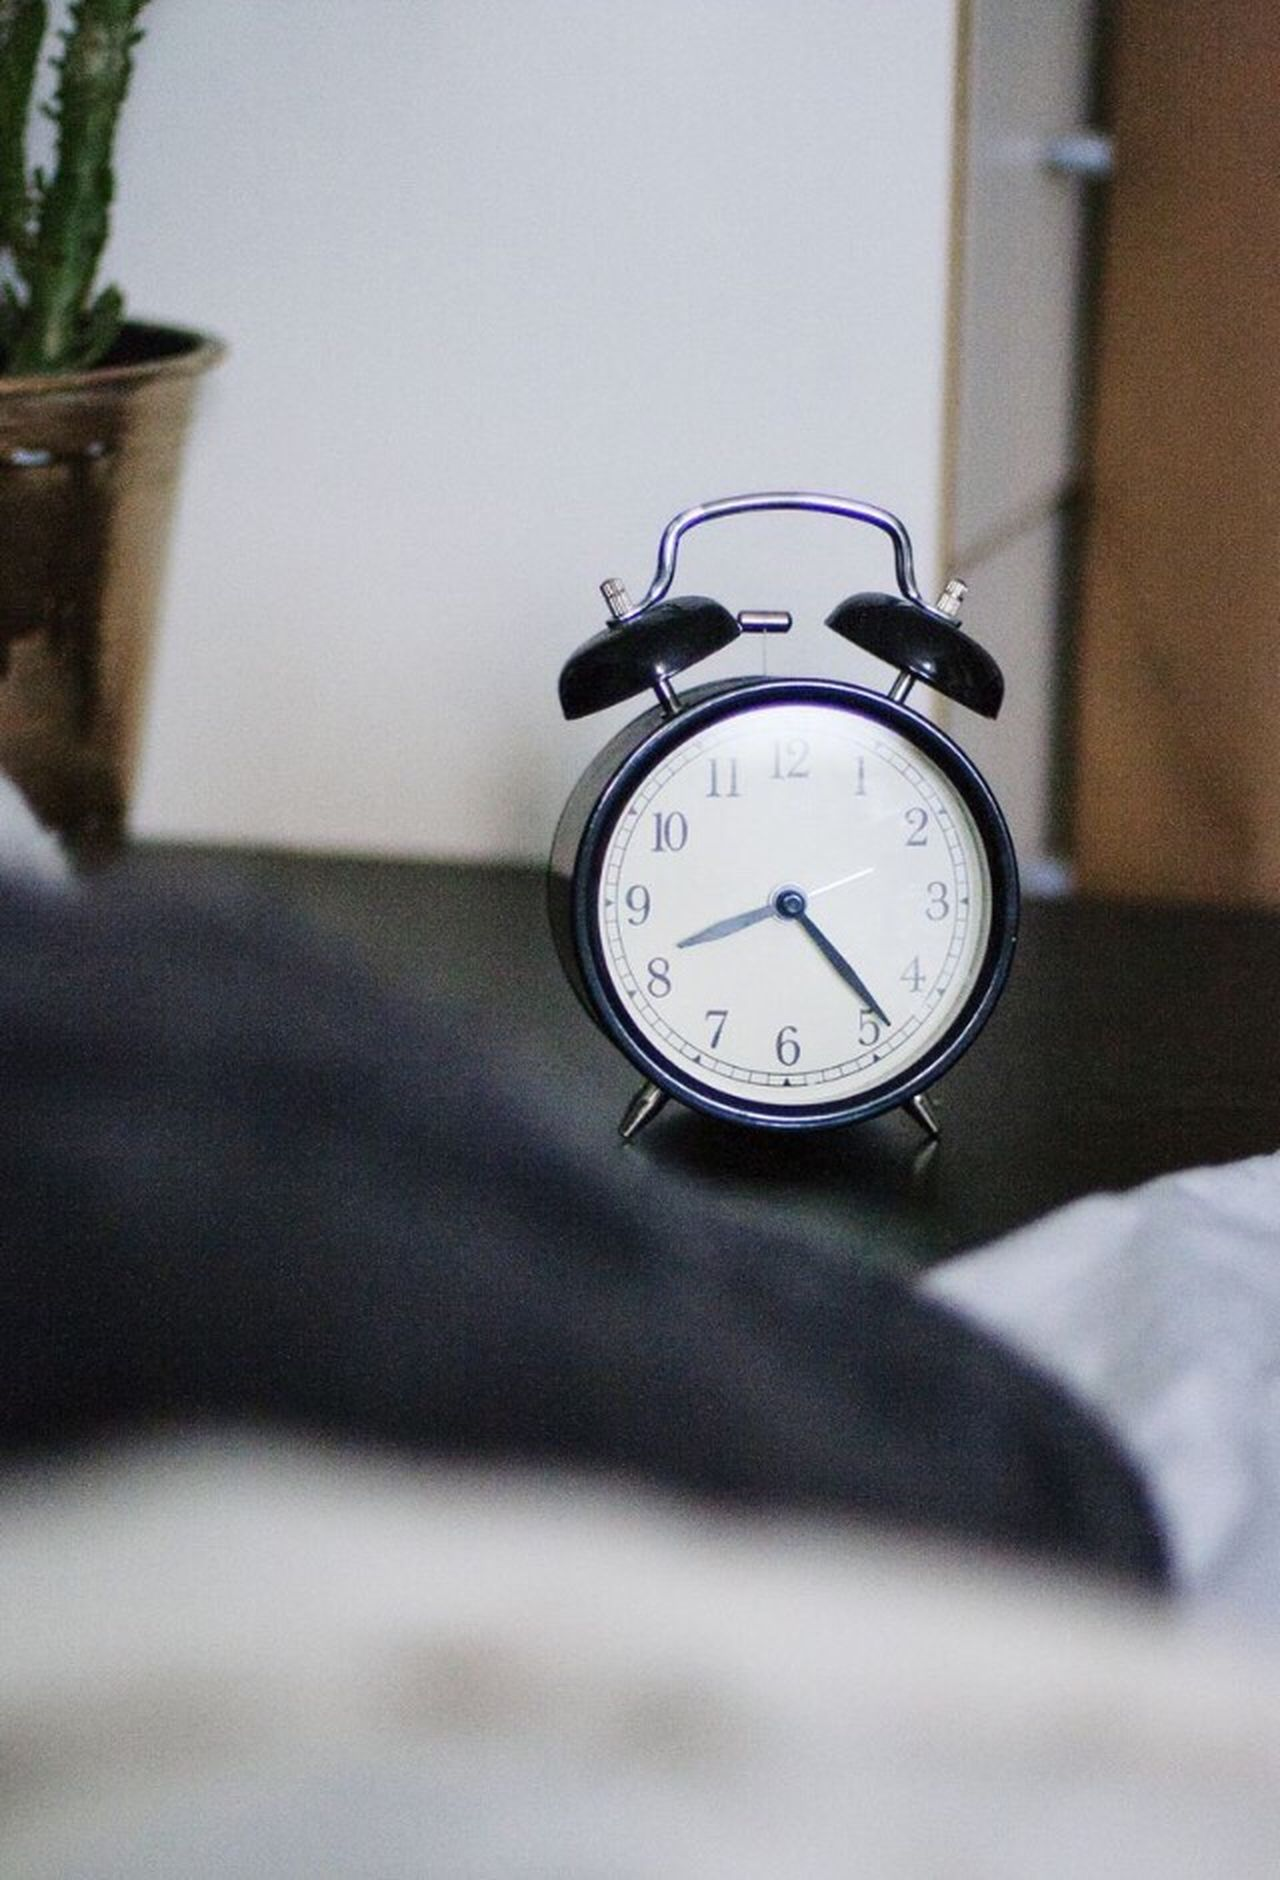 Clock Alarm Clock Time Bed Focus On Foreground Bedroom No People Close-up Indoors  Clock Face Day Peace EyeEmNewHere Savings Morning Wake Up Early Morning AlarmClock Looking At Camera Daydreaming Welcome To Black The Architect - 2017 EyeEm Awards